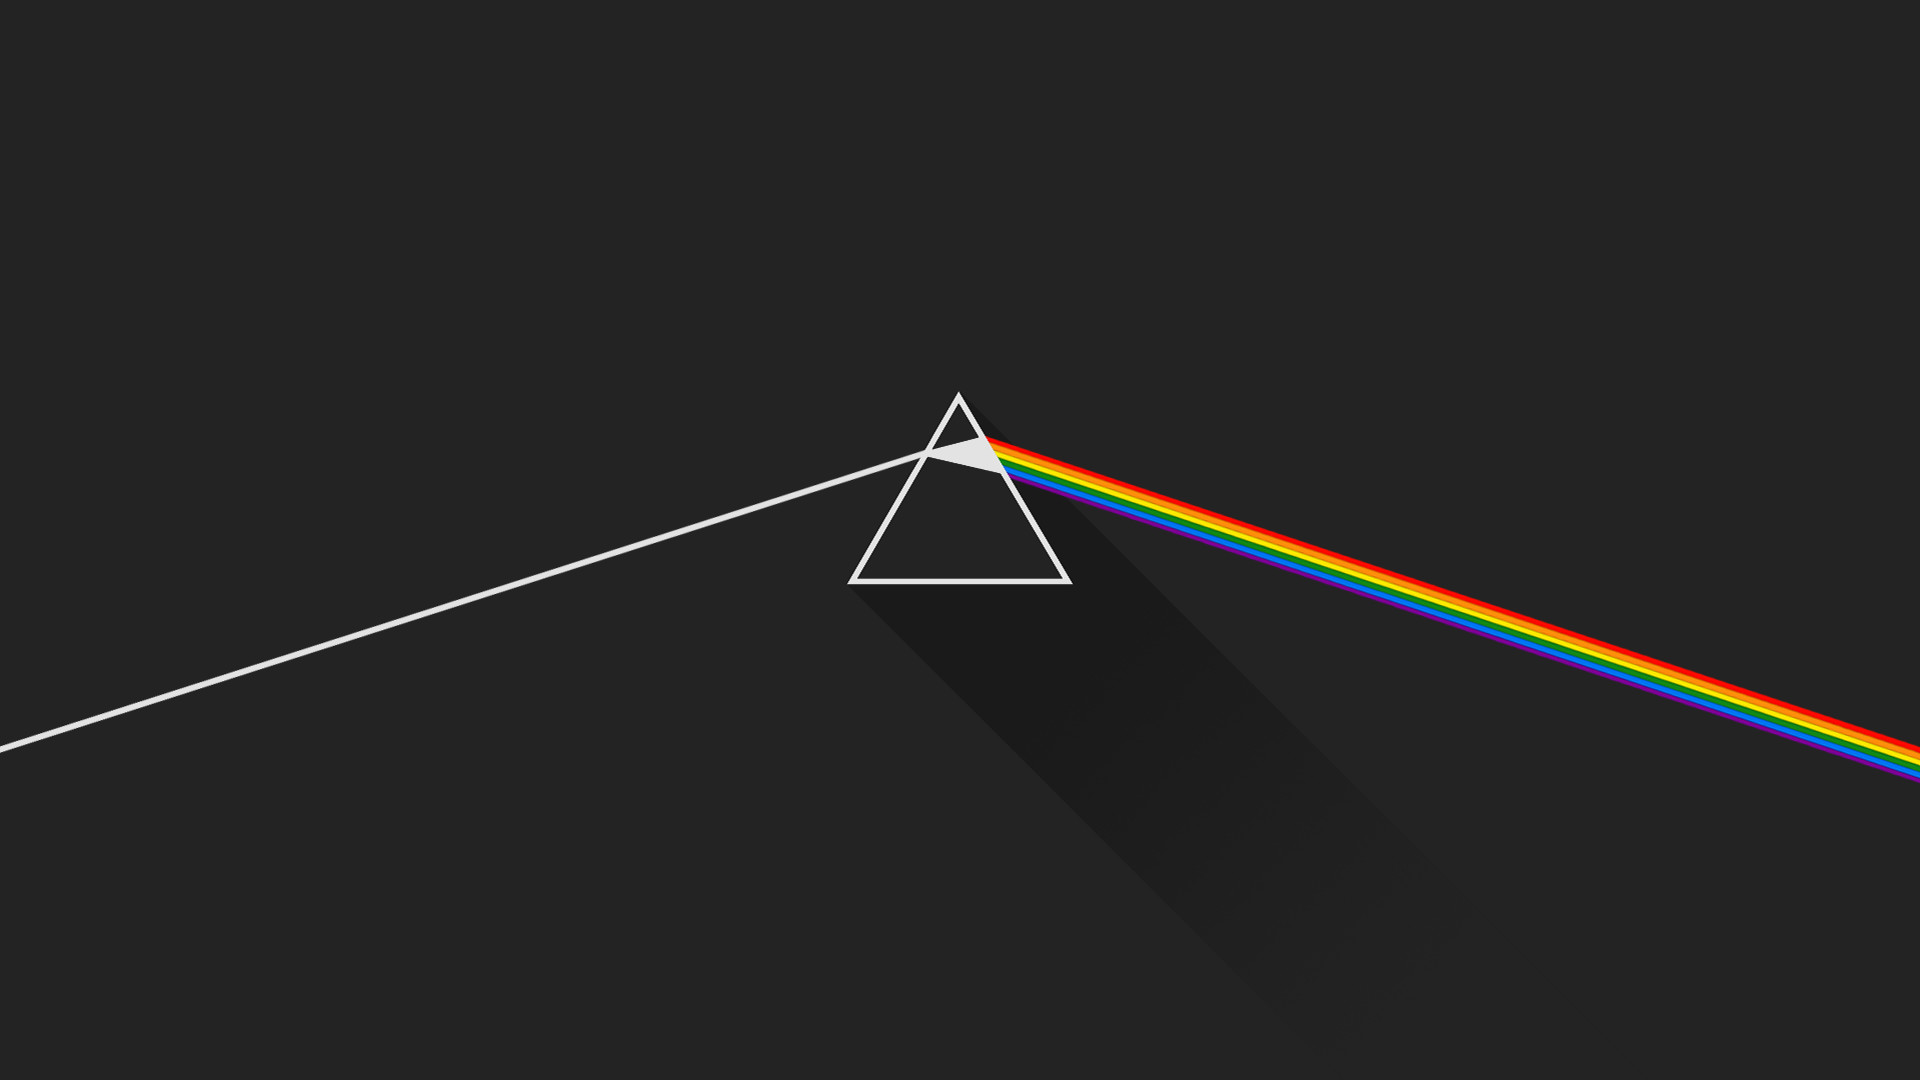 1920x1080 pink floyd wallpaper 1080p #828756